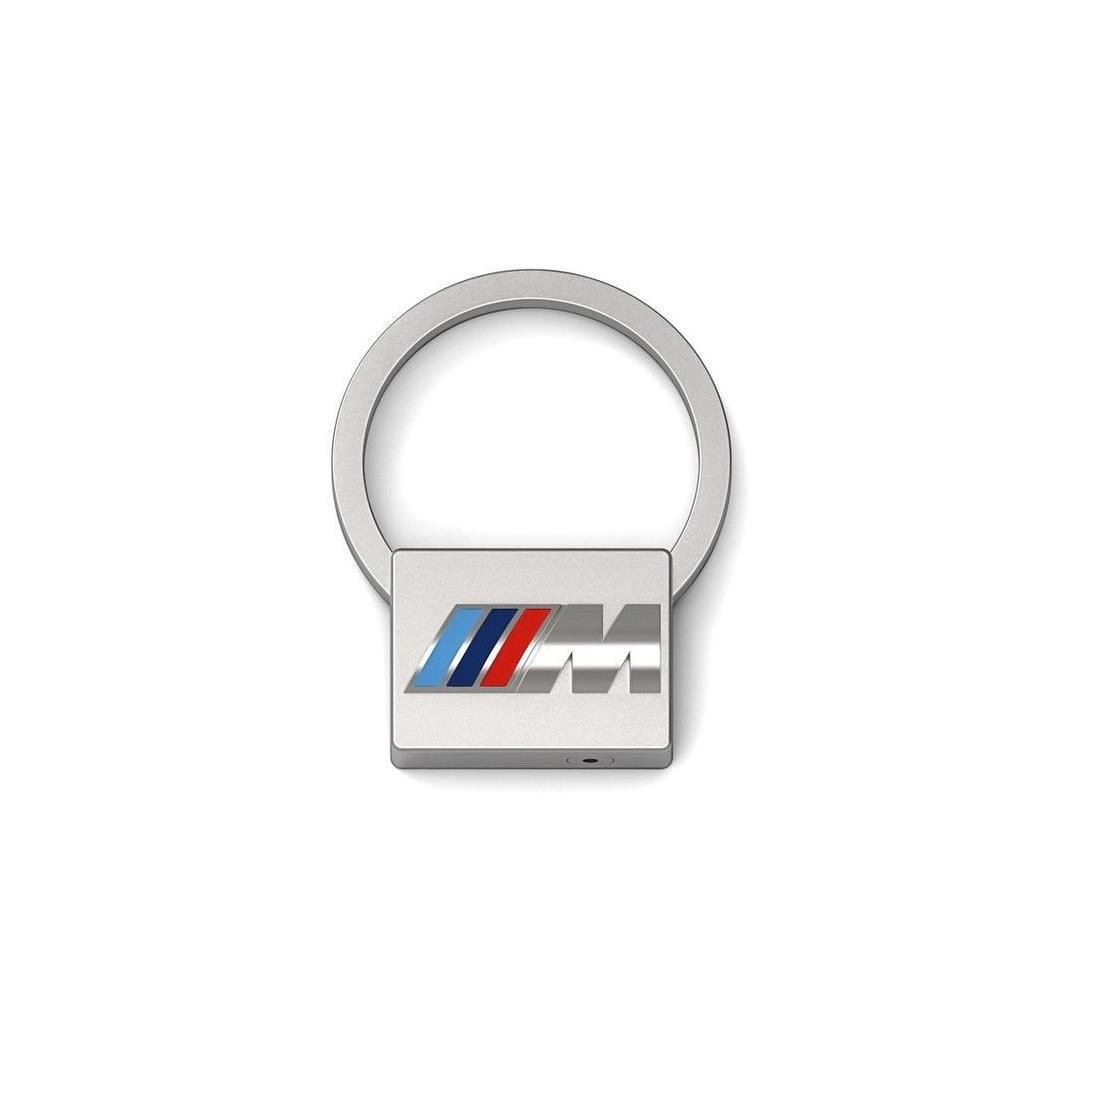 Find great deals on eBay for bmw m key ring. Shop with confidence.